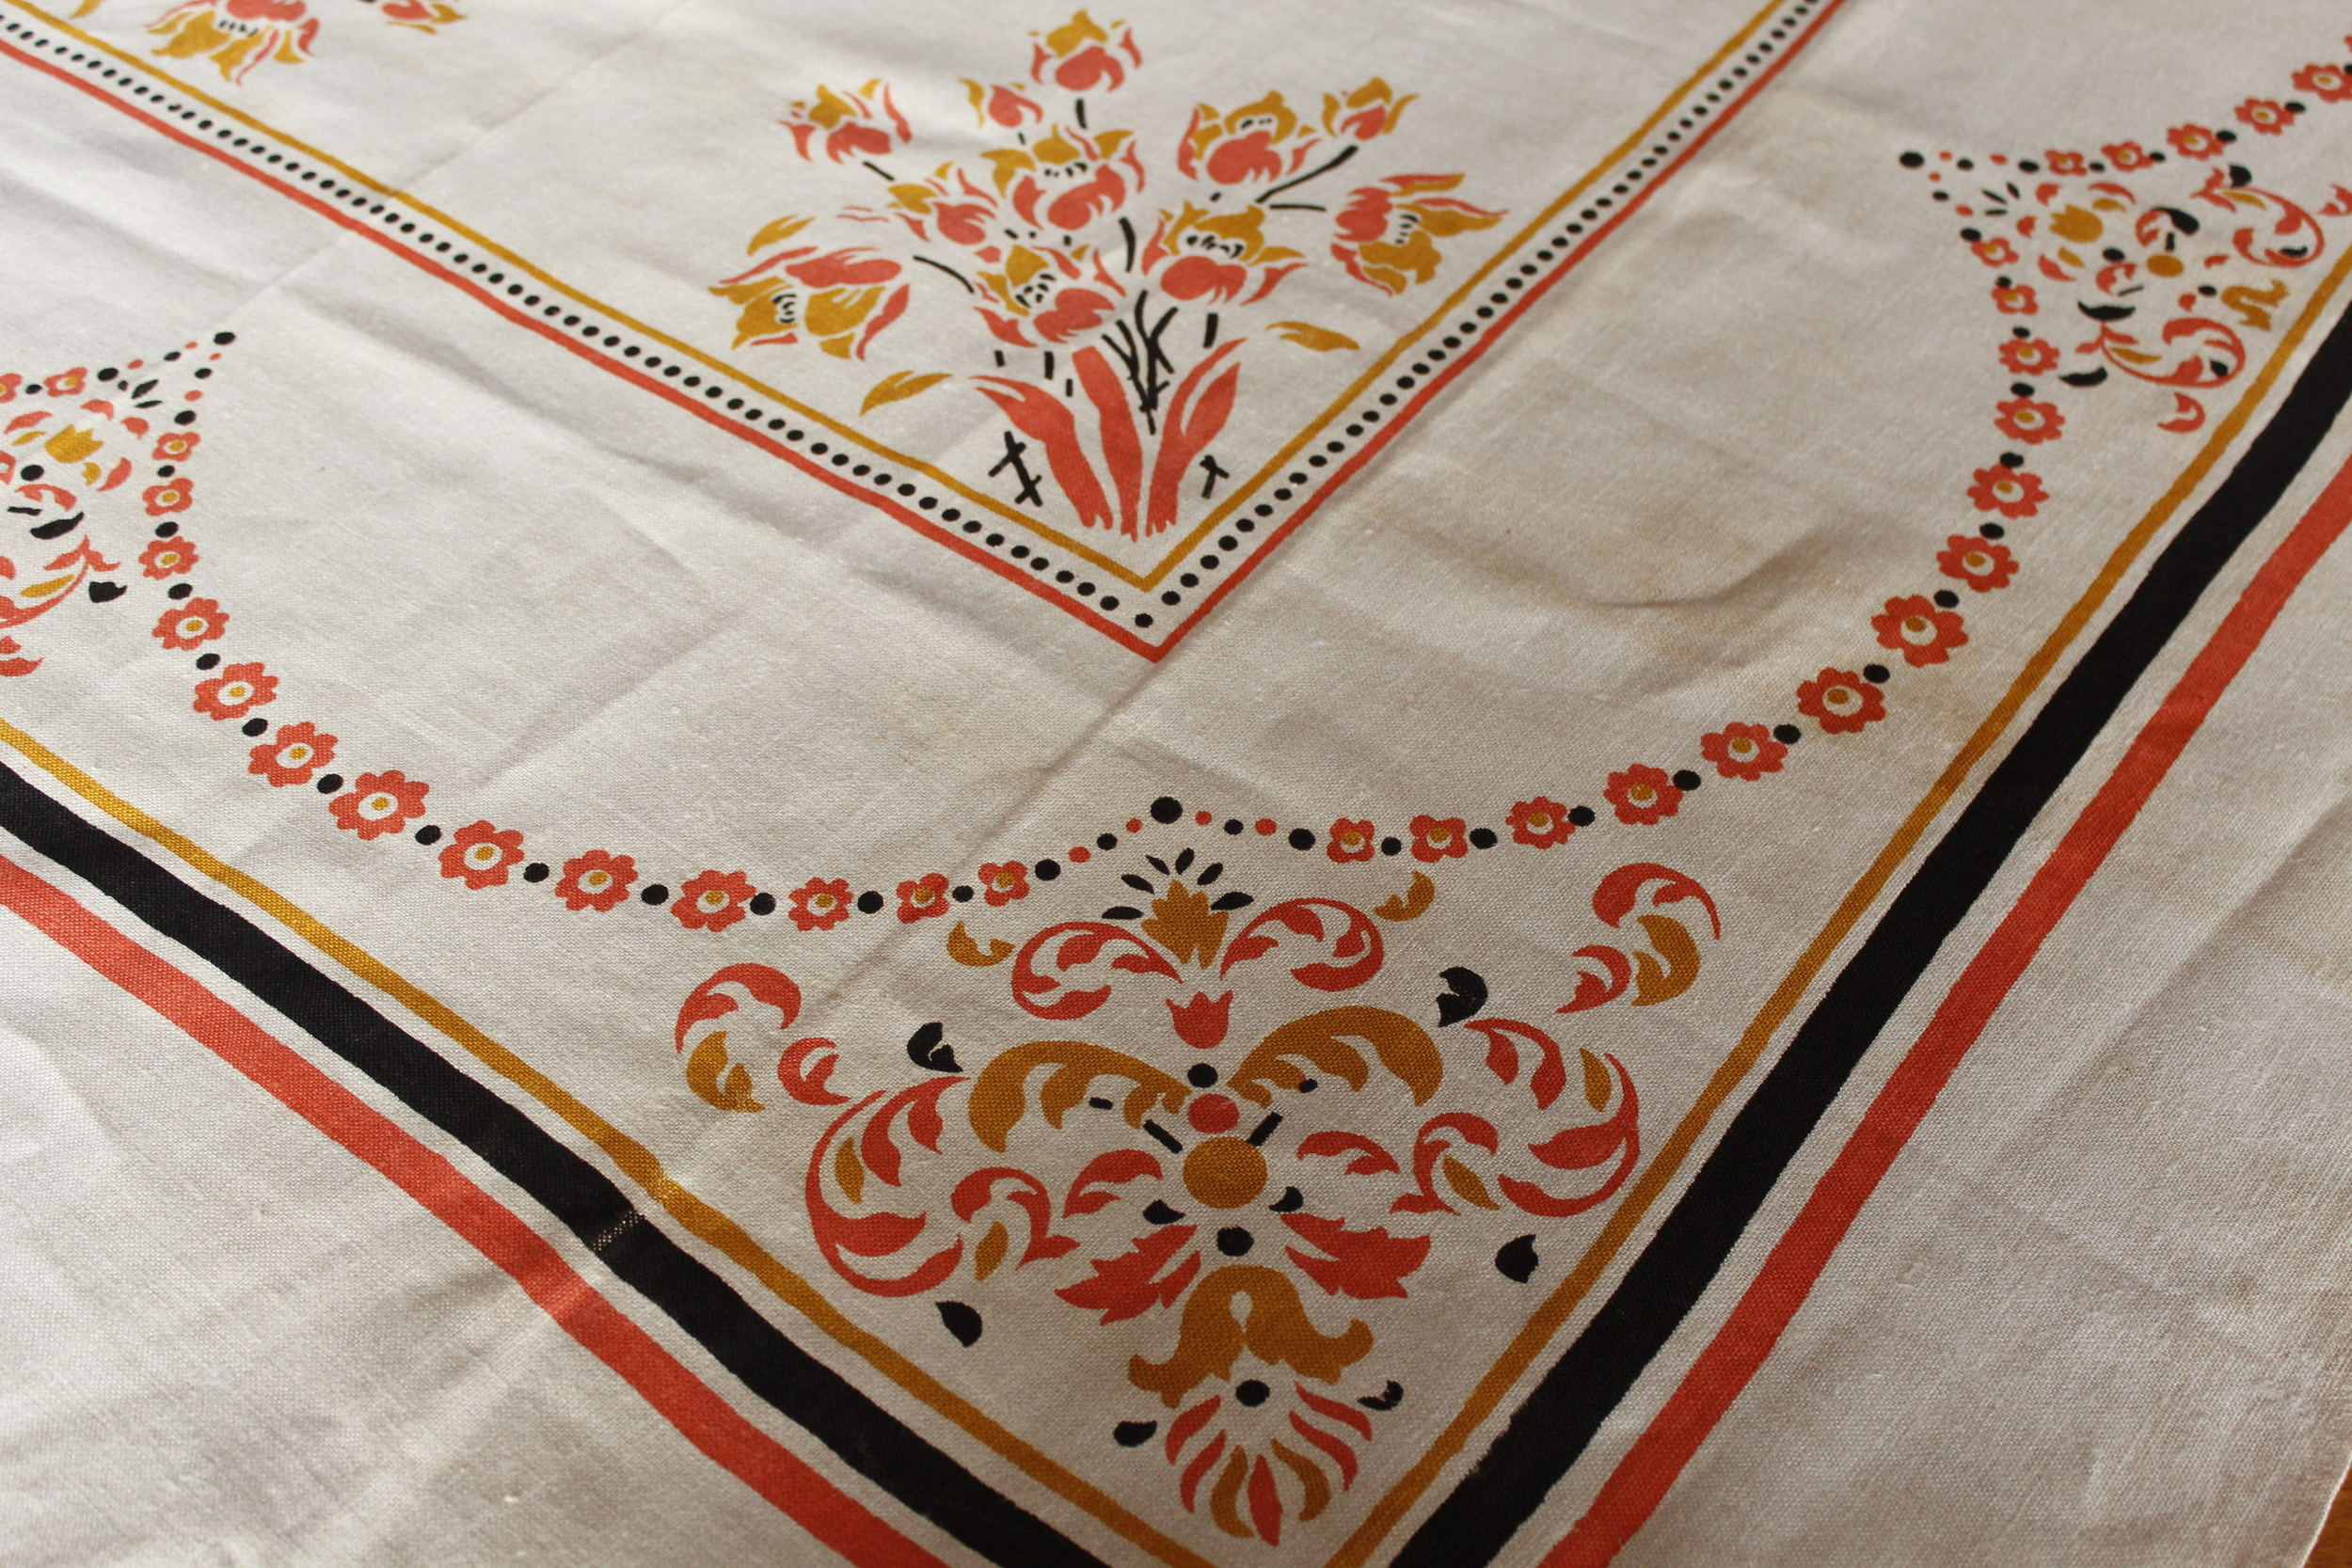 Vintage Printed Tablecloth